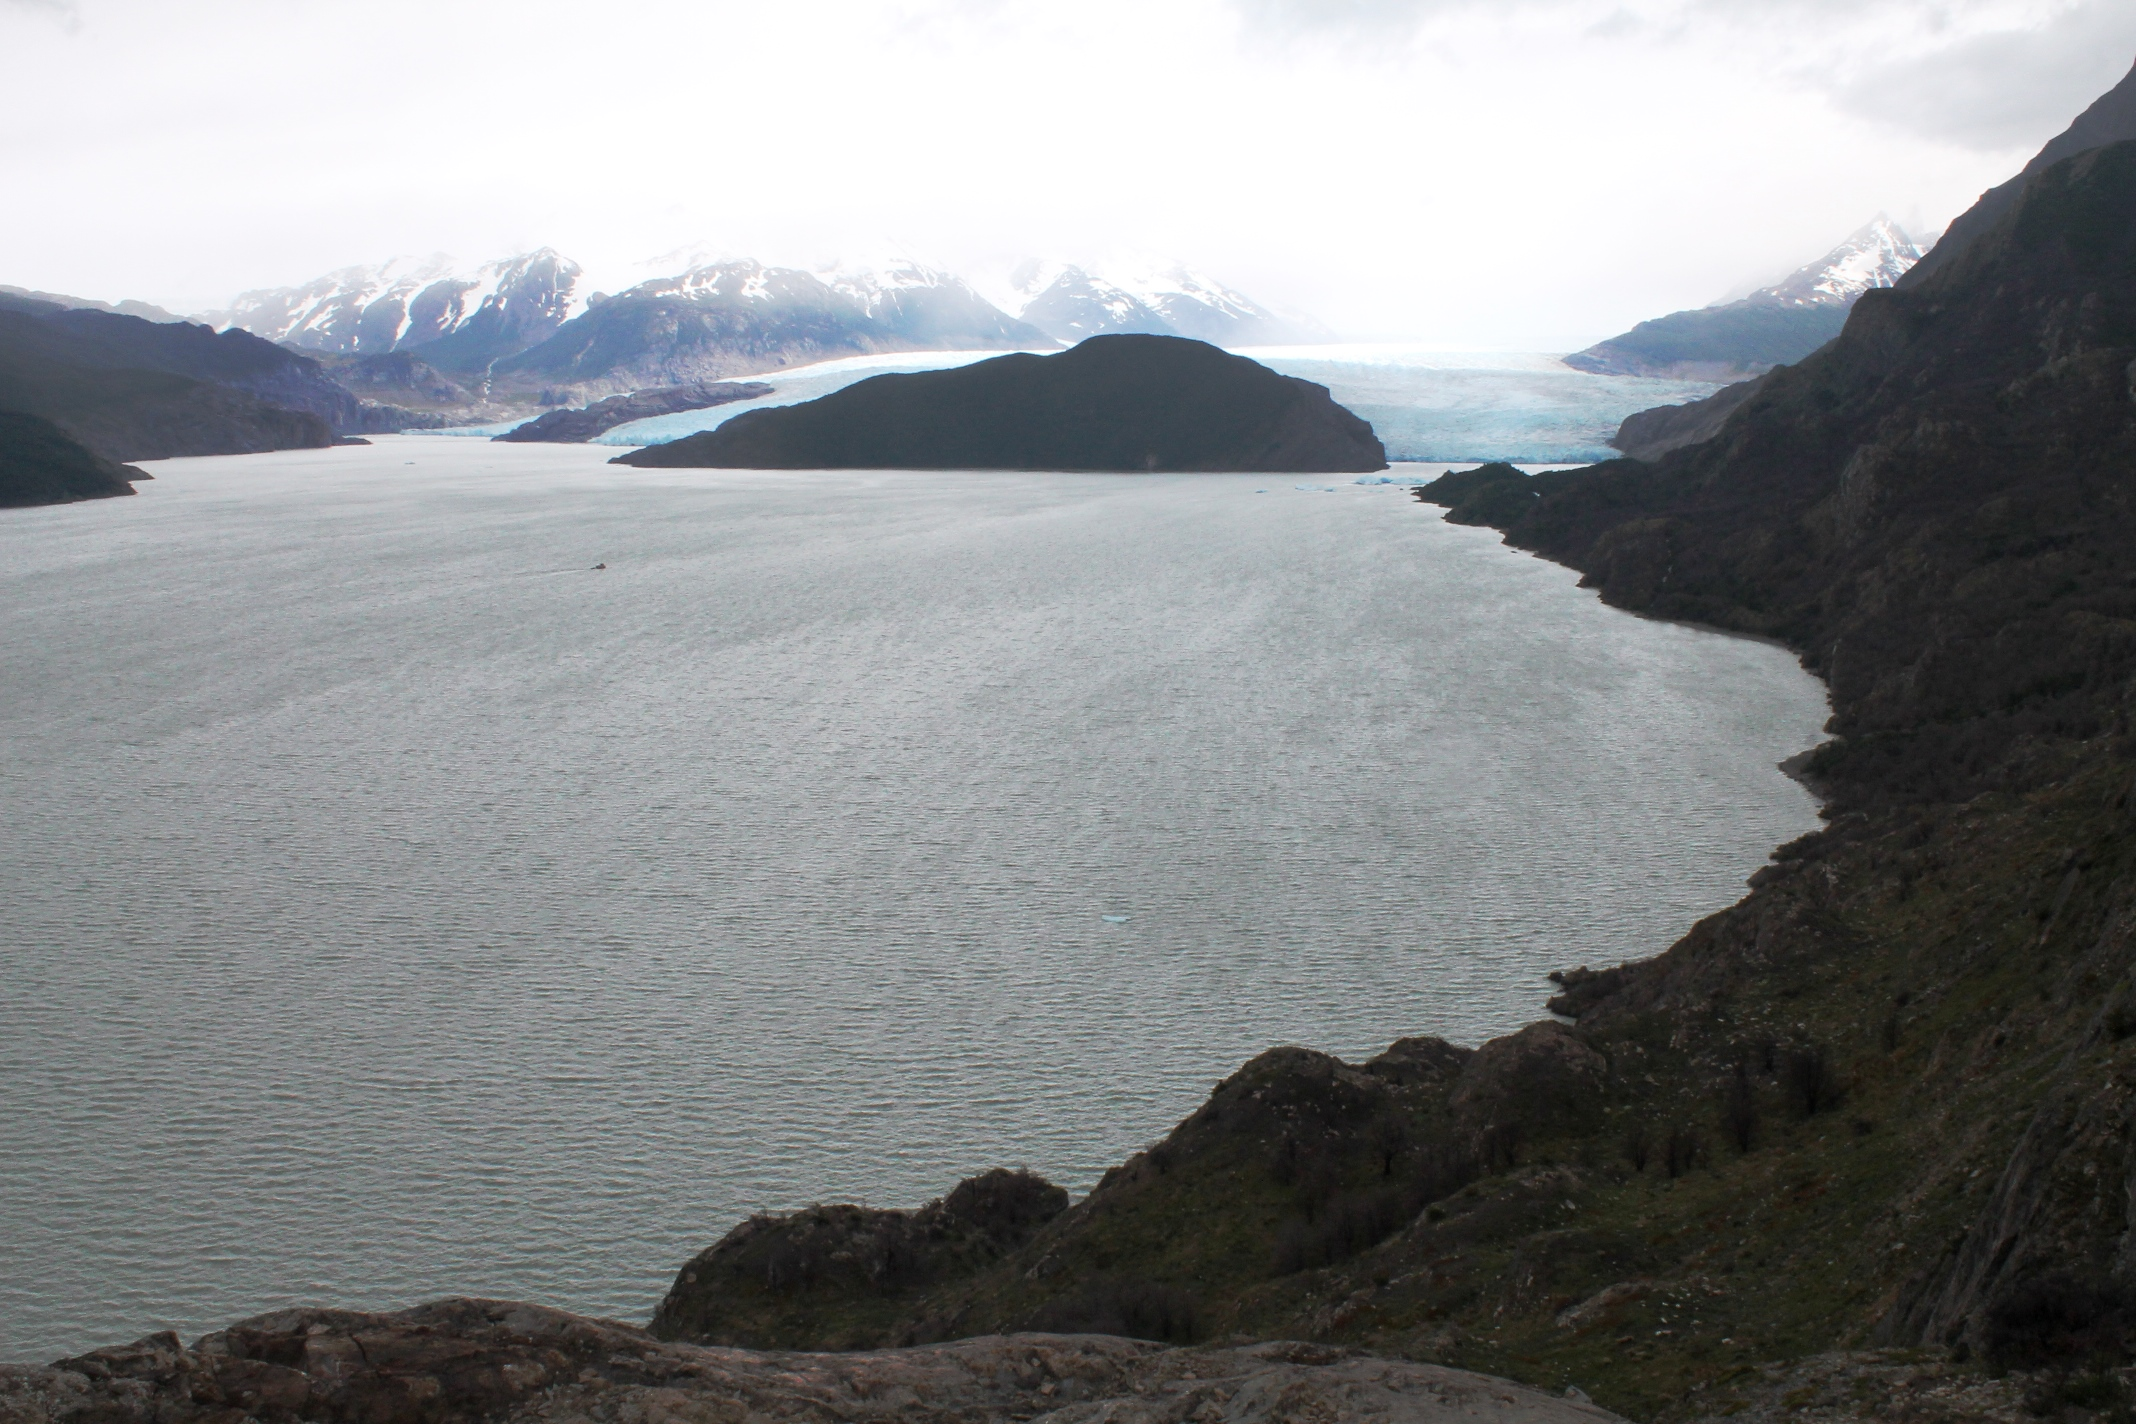 Day 4 in Torres Del Paine – Chilean Patagonia